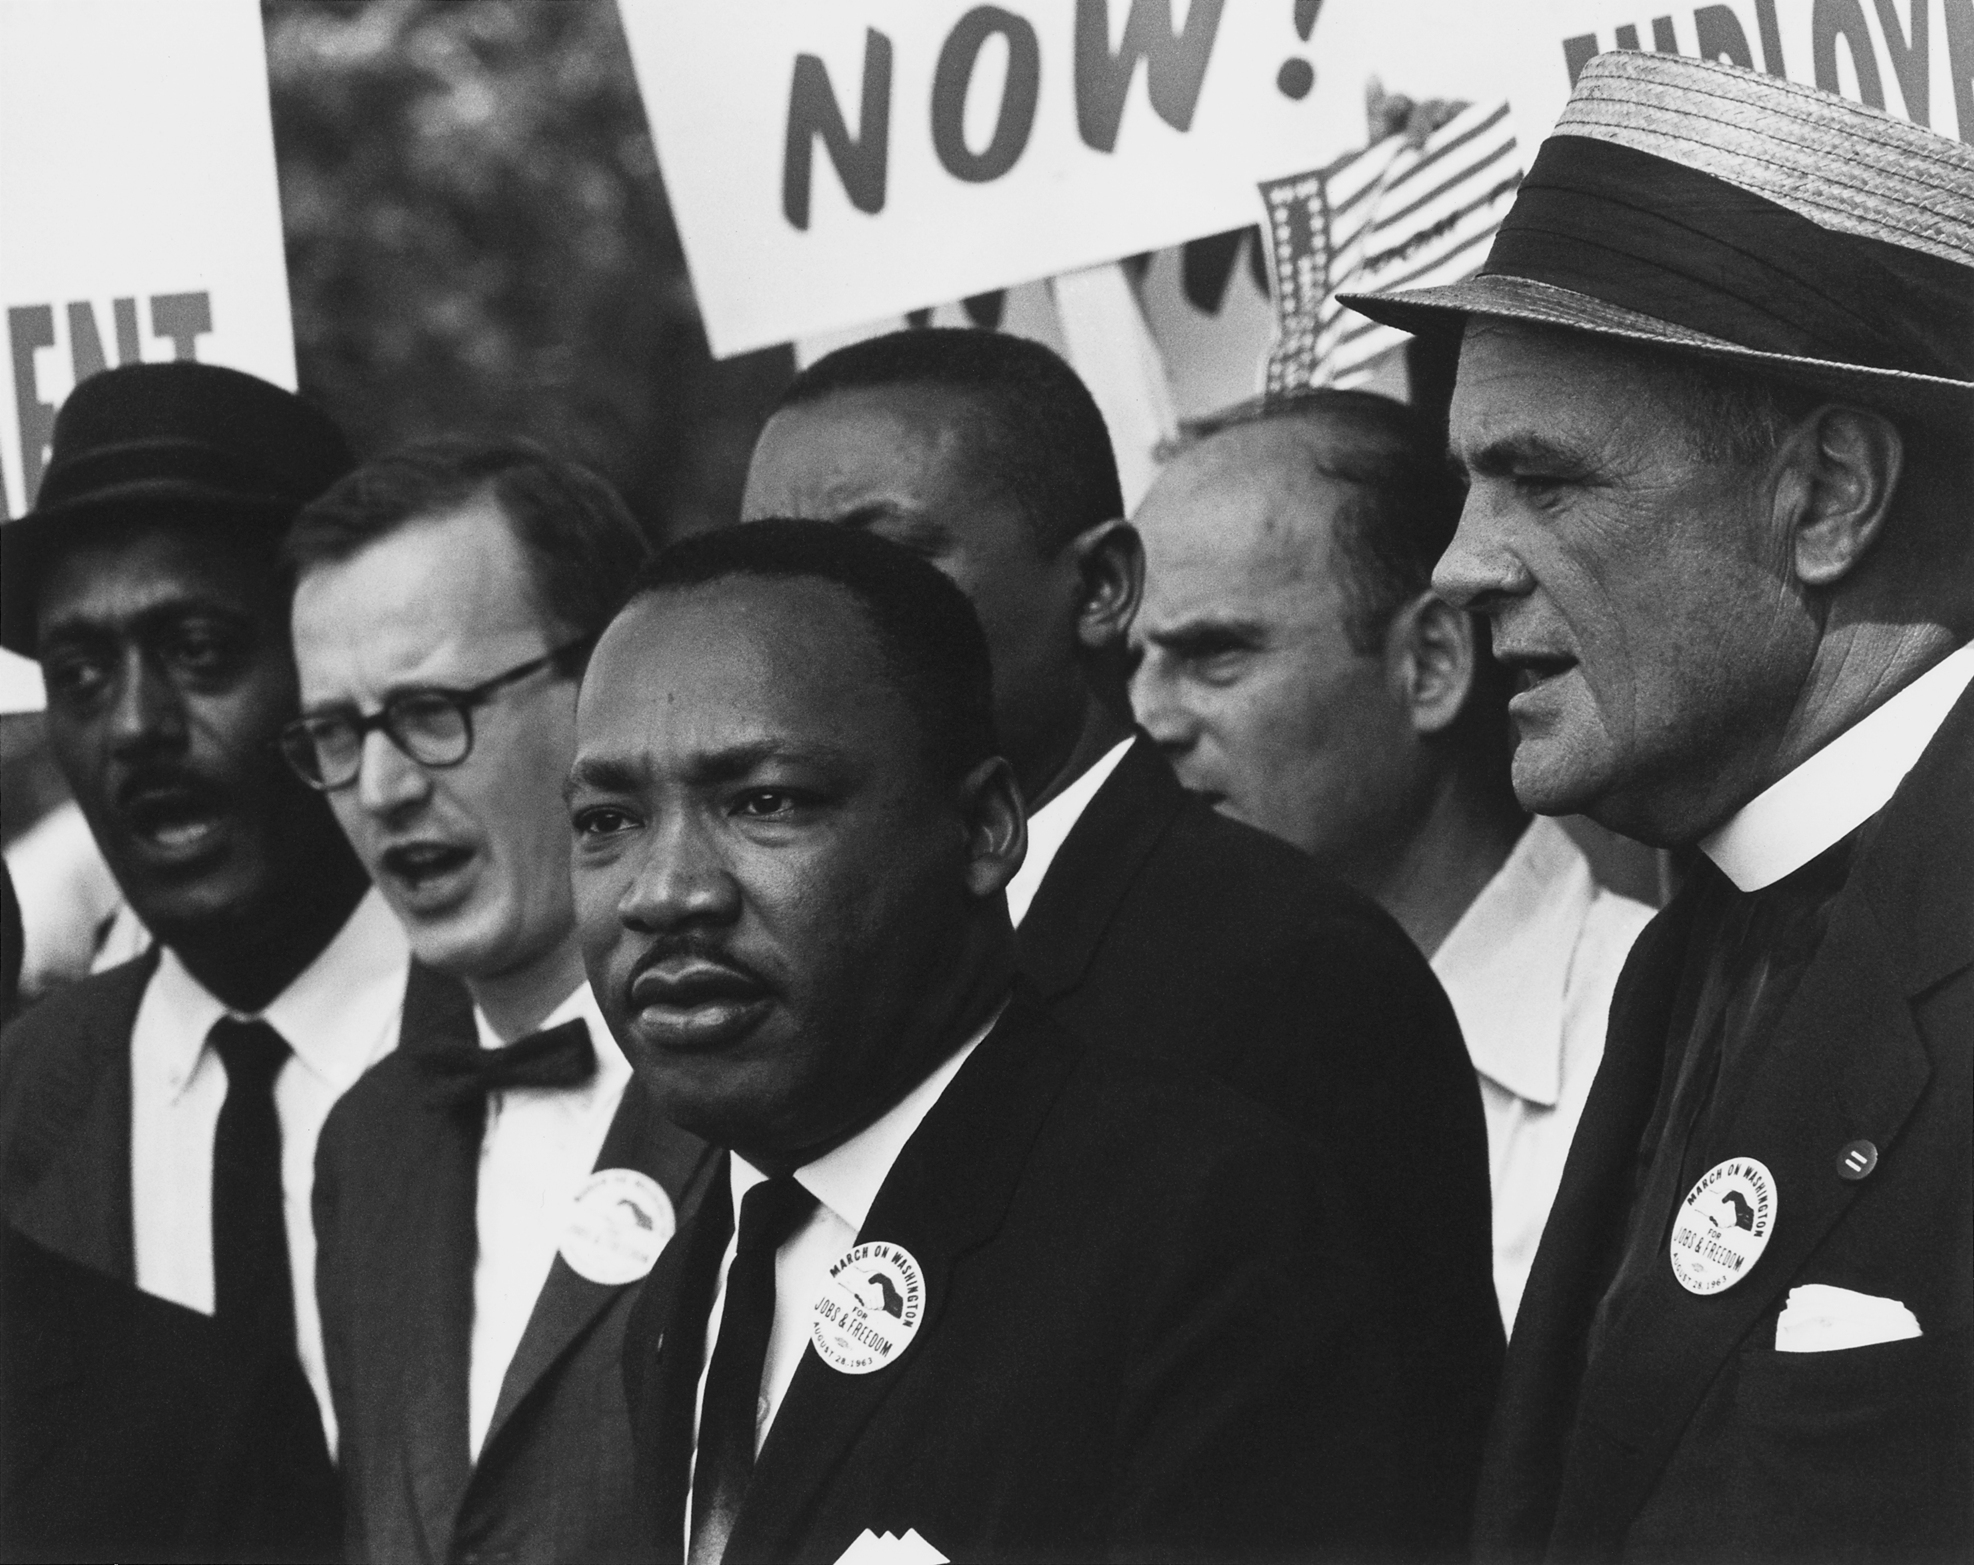 Martin Luther King, Jr. at a Civil Rights March on Washington, D.C.